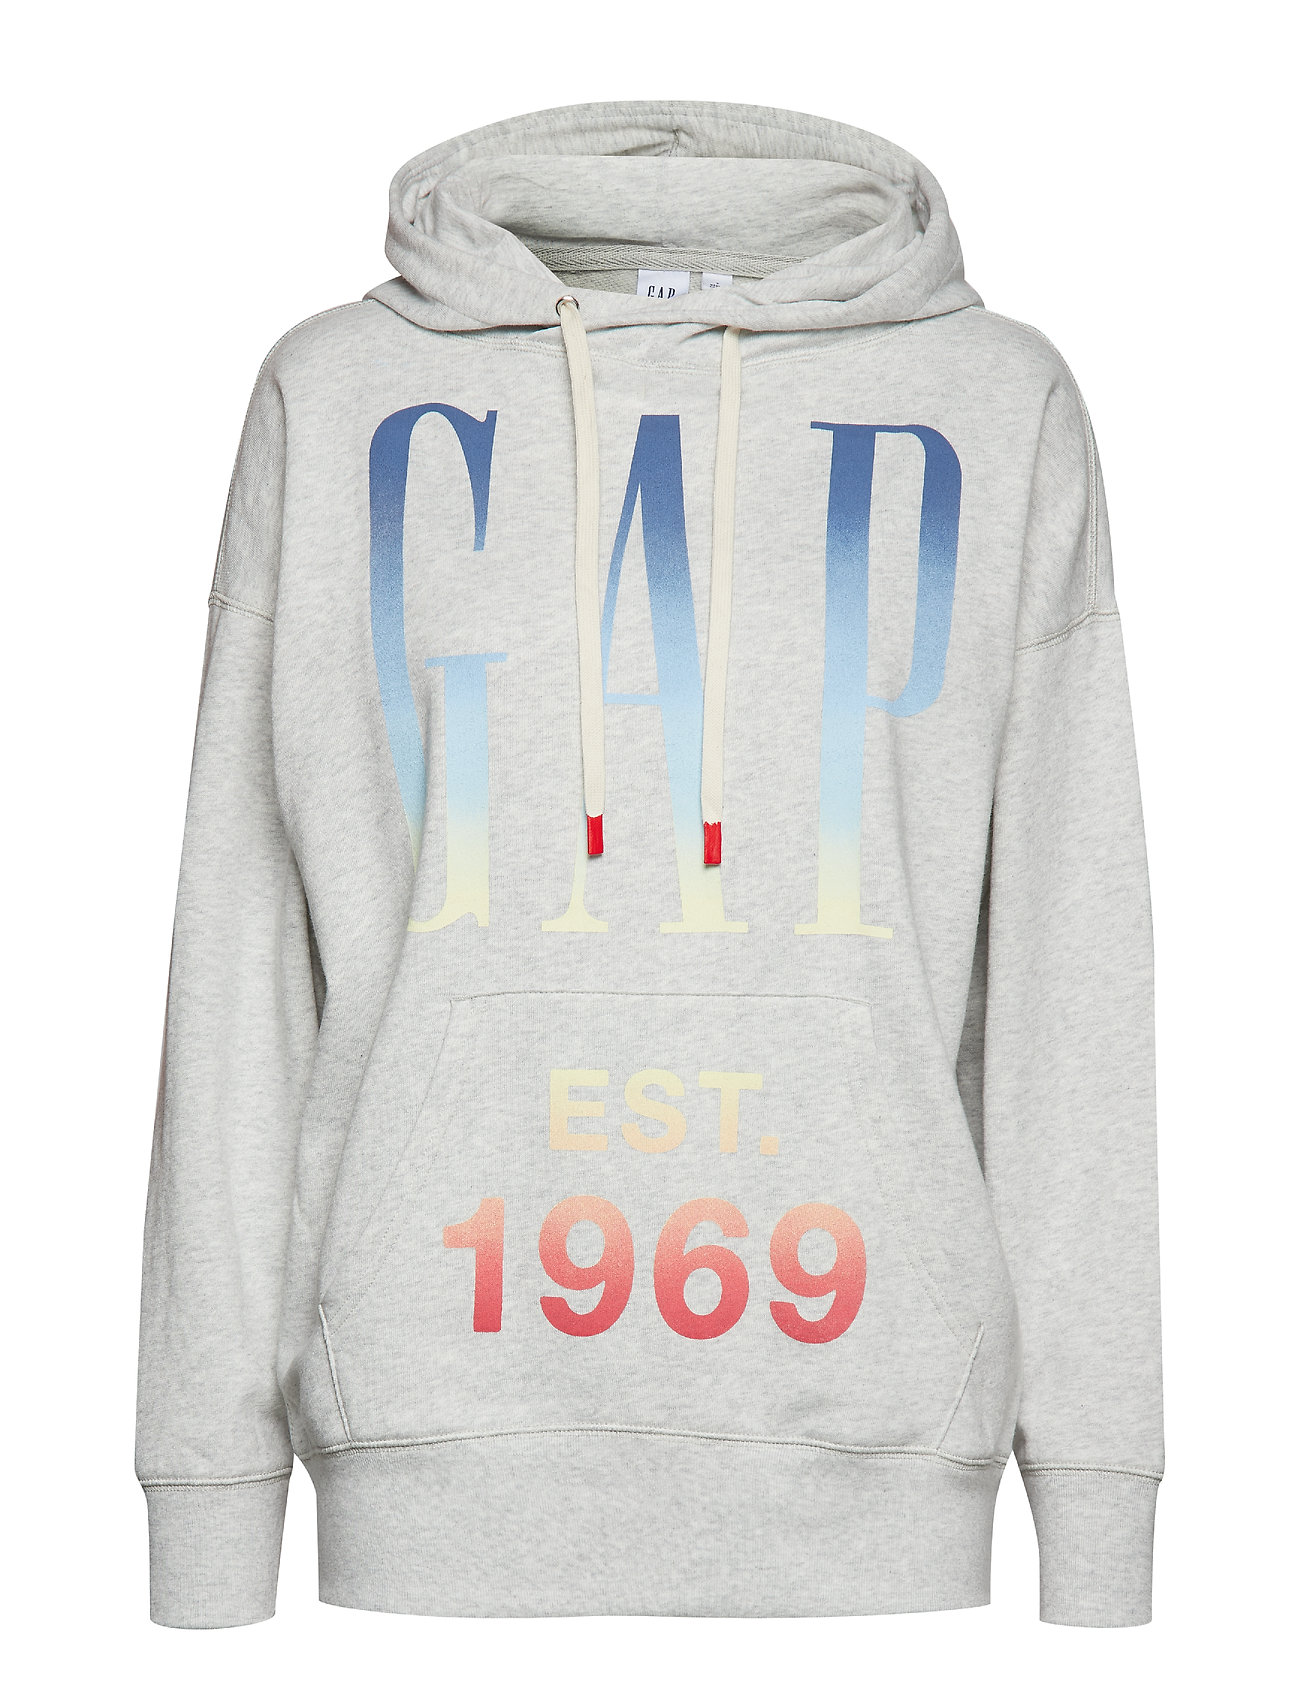 GAP Vintage Soft Oversized Logo Pullover Hoodie - BC02 LIGHT HTHR GREY